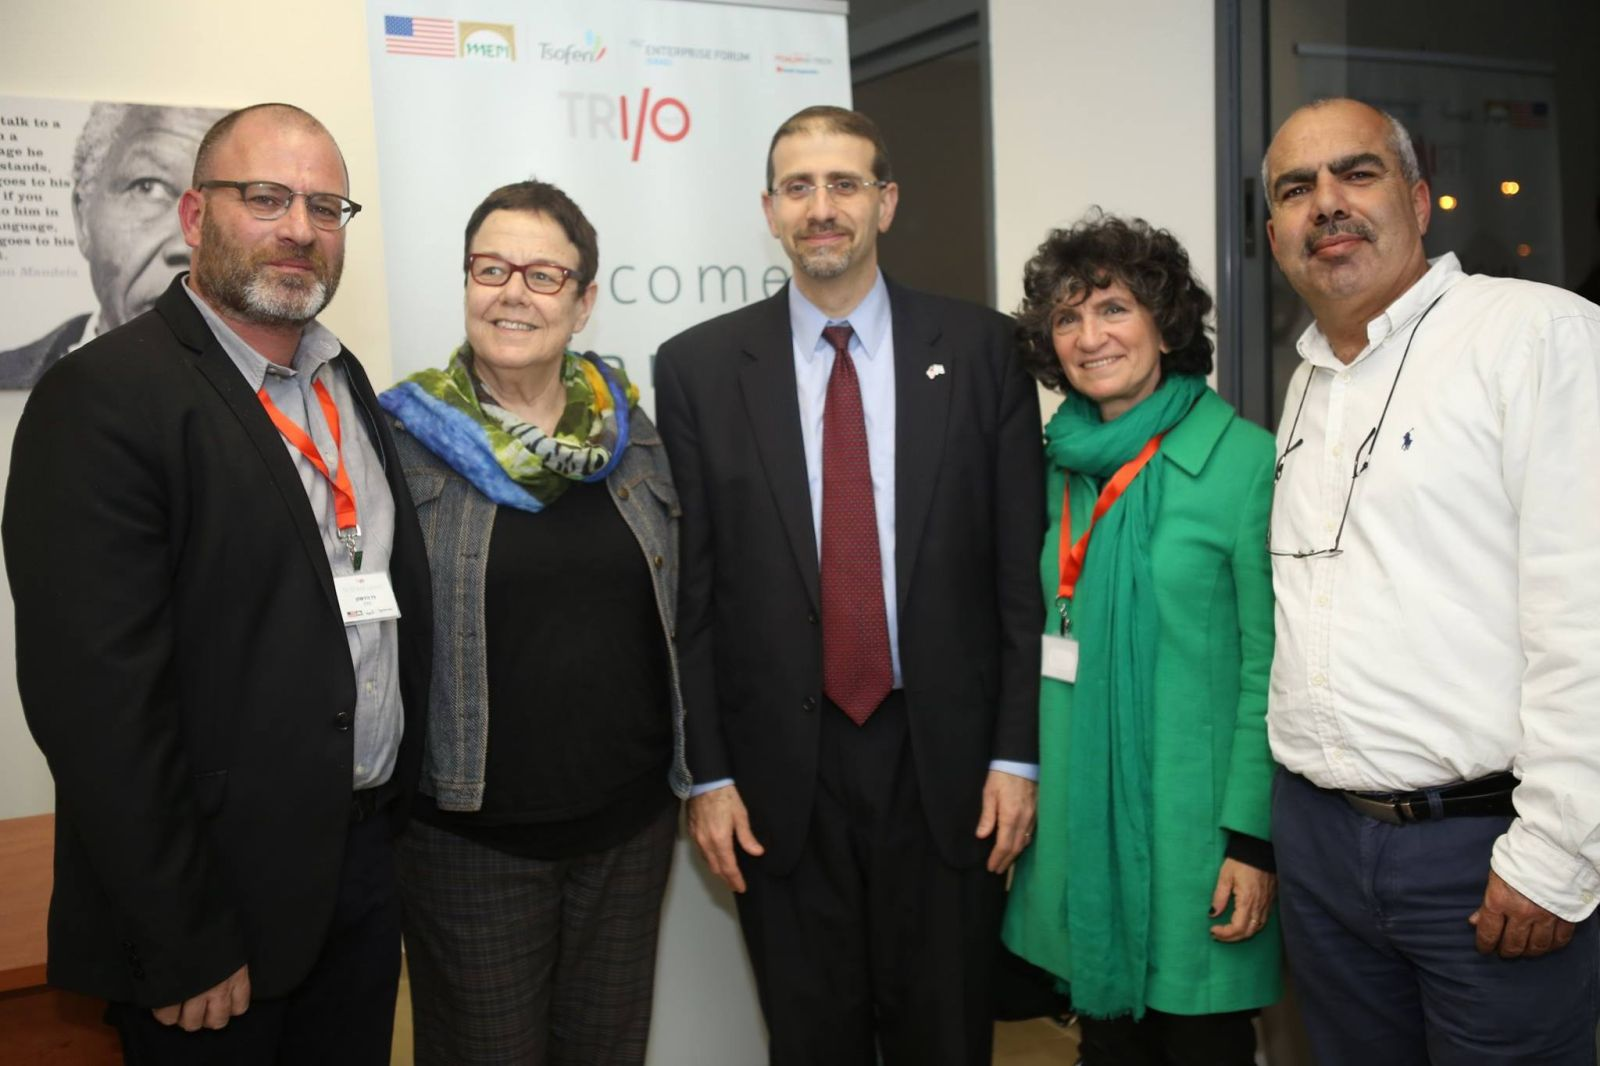 At the opening of TRI/O Tech hub were, from left, Paz Hirschmann, Smadar Nehab, US Ambassador Dan Shapiro, Ayla Matalon and Sami Saadi. Photo from Facebook